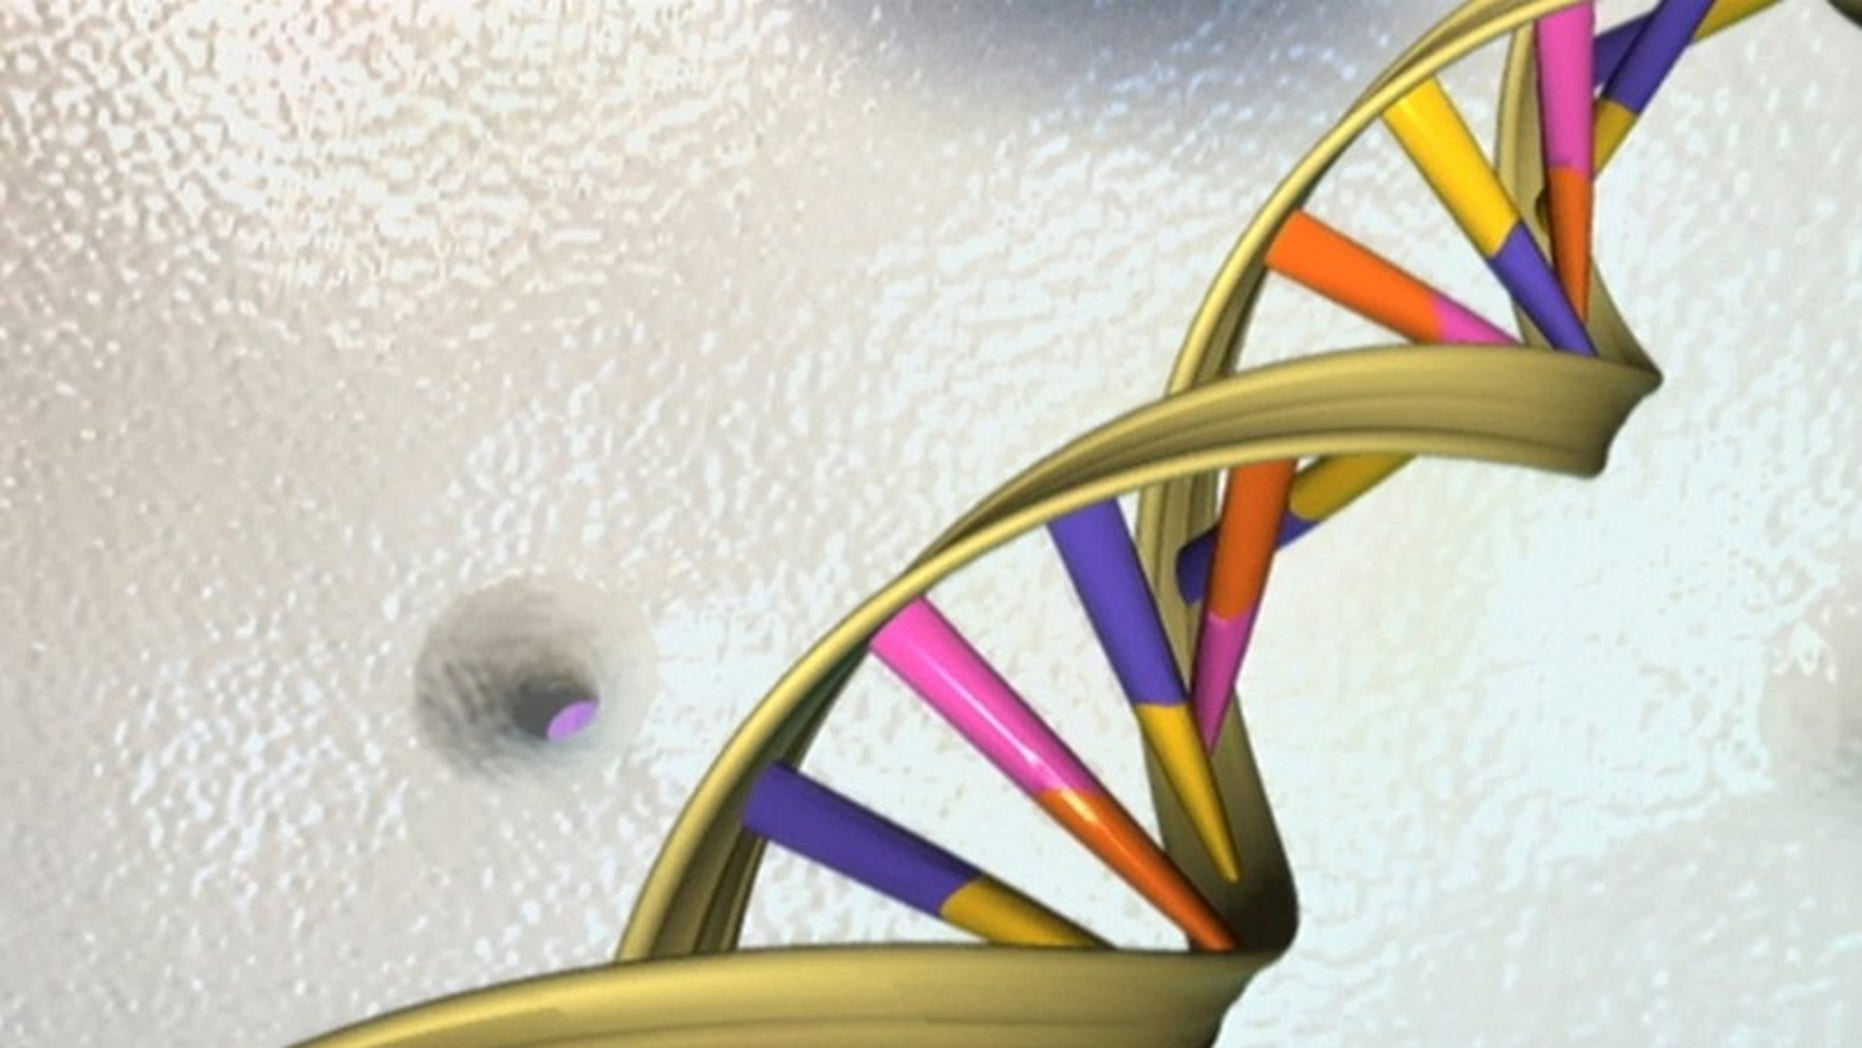 A file photo of a DNA double helix in an undated artist's illustration released by the National Human Genome Research Institute to Reuters